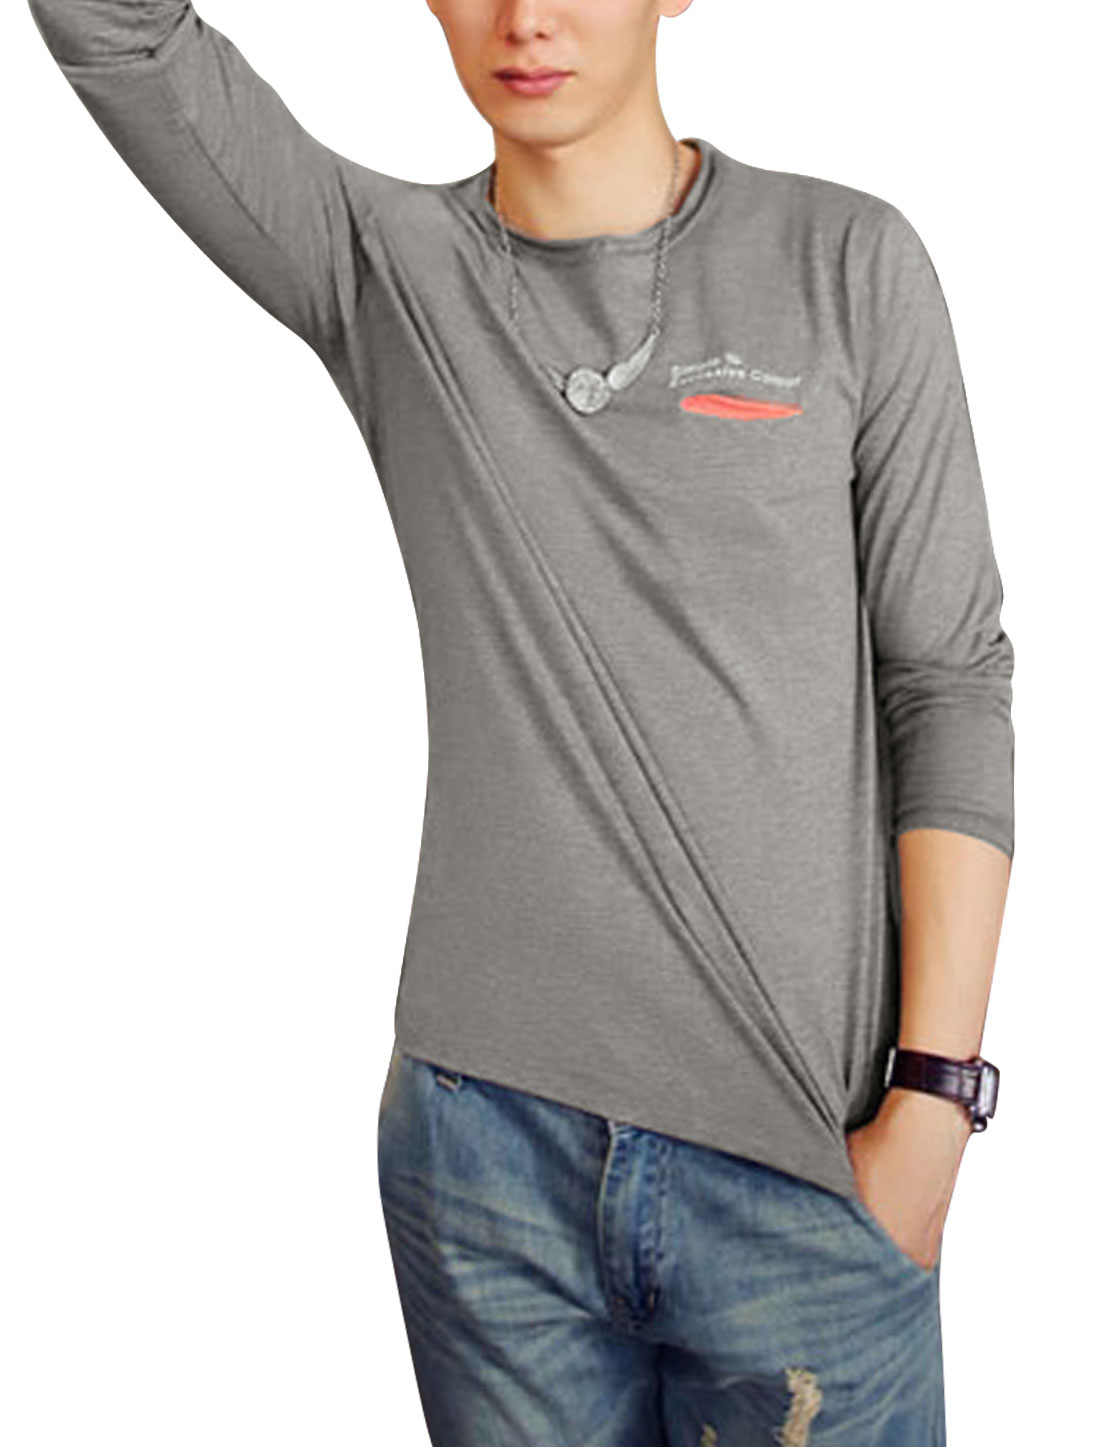 Men Single Welt Pocket Slipover Slim Tee Shirt Gray S